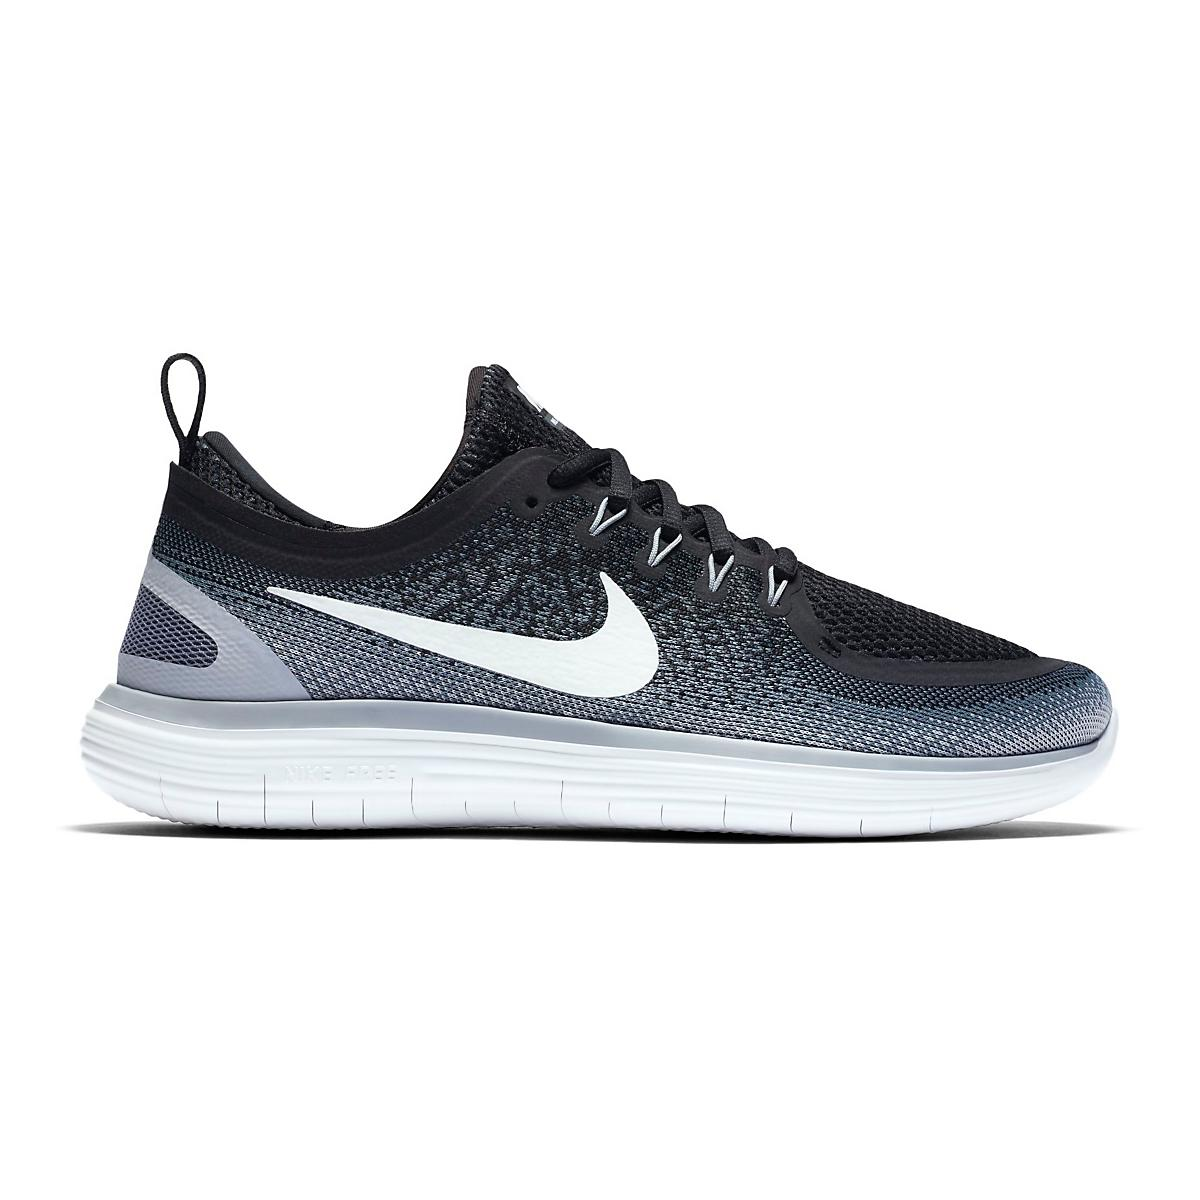 online retailer cda2b 3564f Mens Nike Free RN Distance 2 Running Shoe at Road Runner Sports